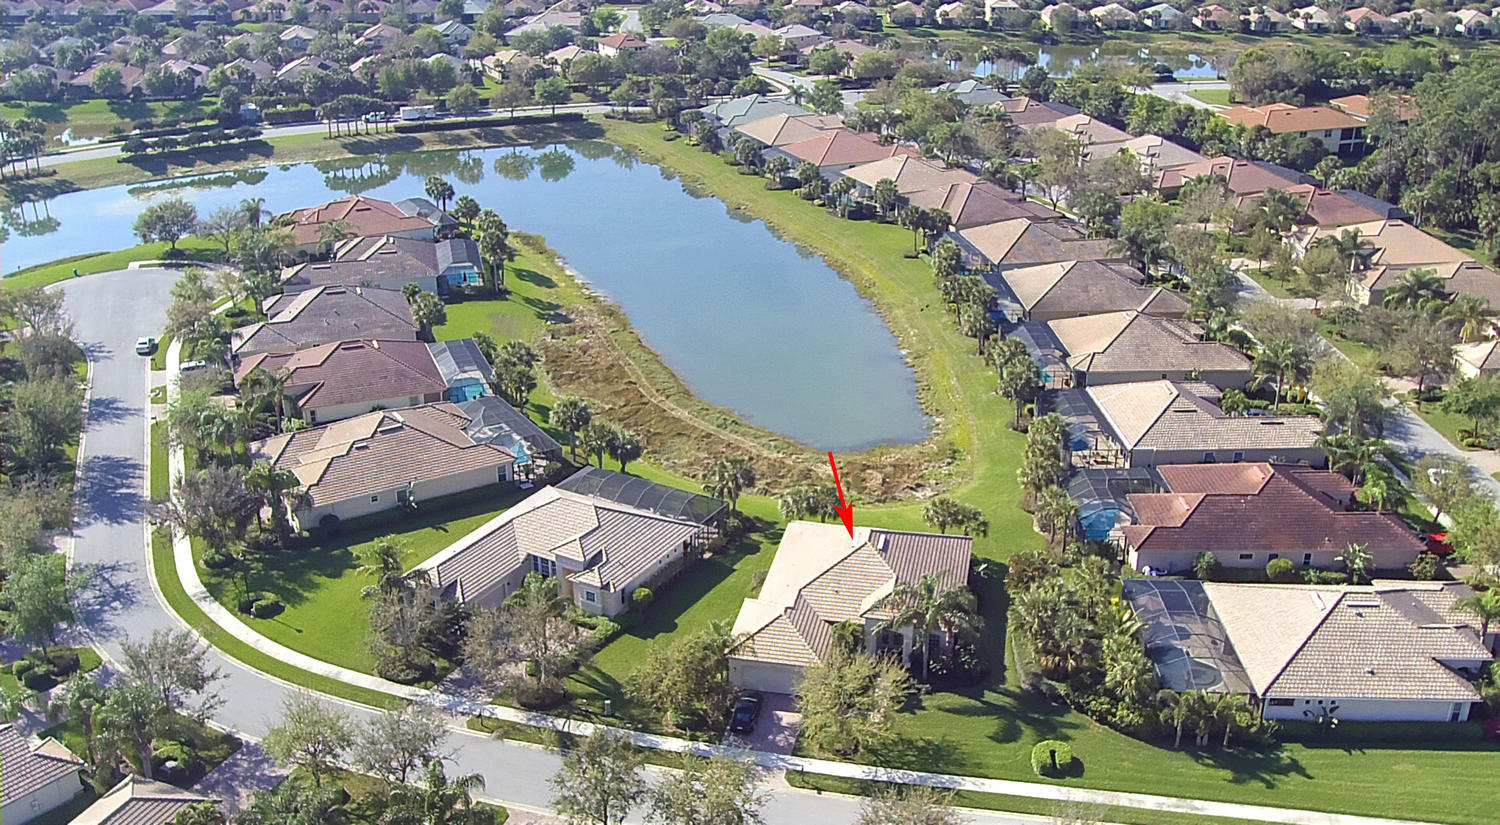 Aerial View of 10305 Wishing Stone Ct, Bonita Springs FL